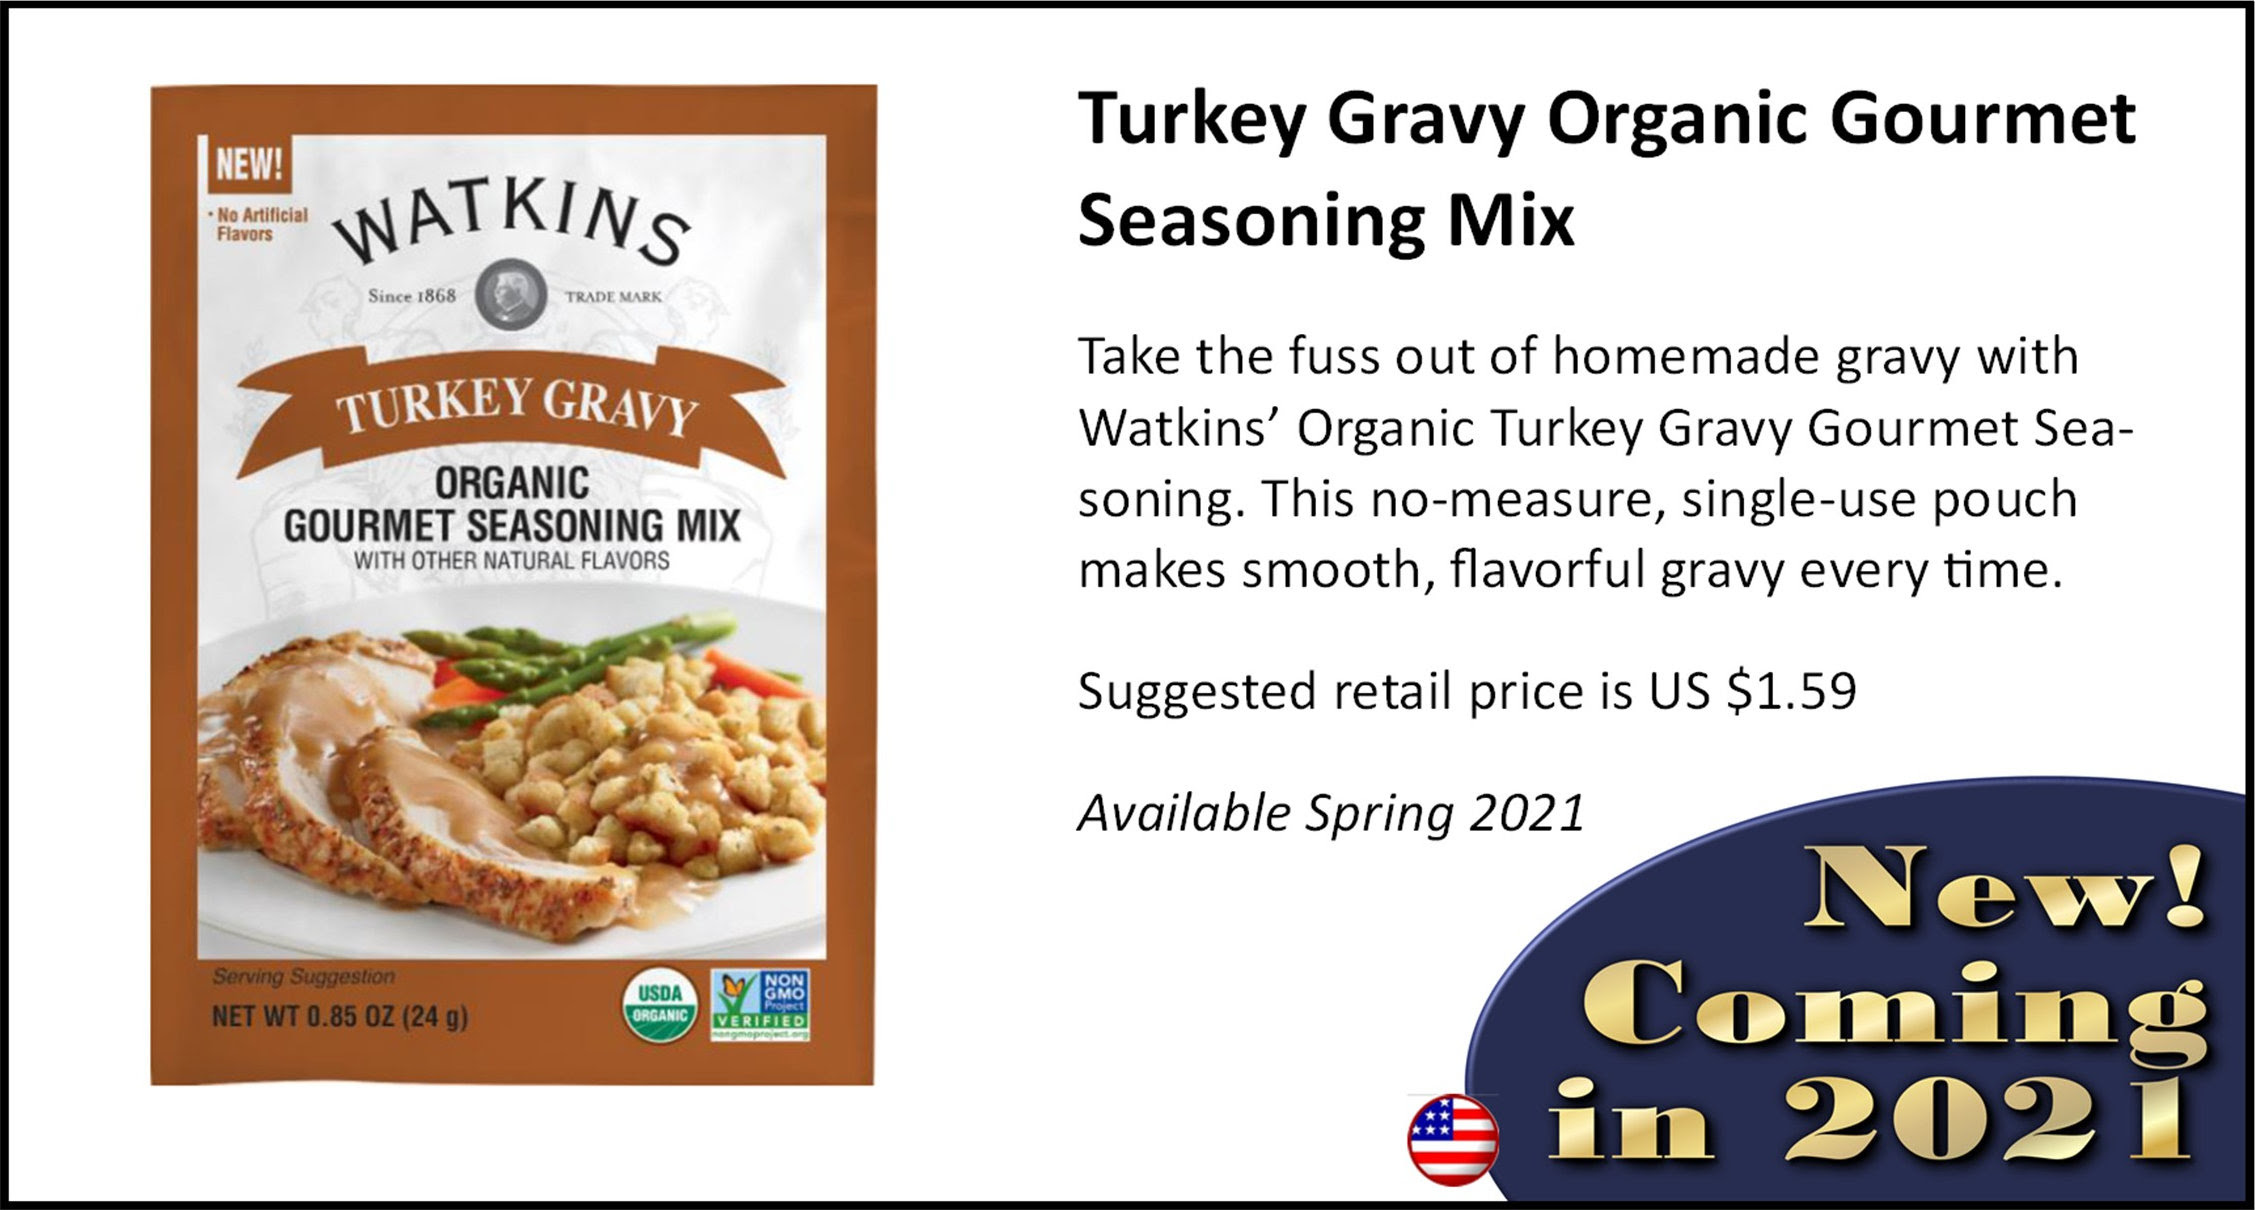 Watkins Turkey Gravy Organic Gourmet Seasoning Mix